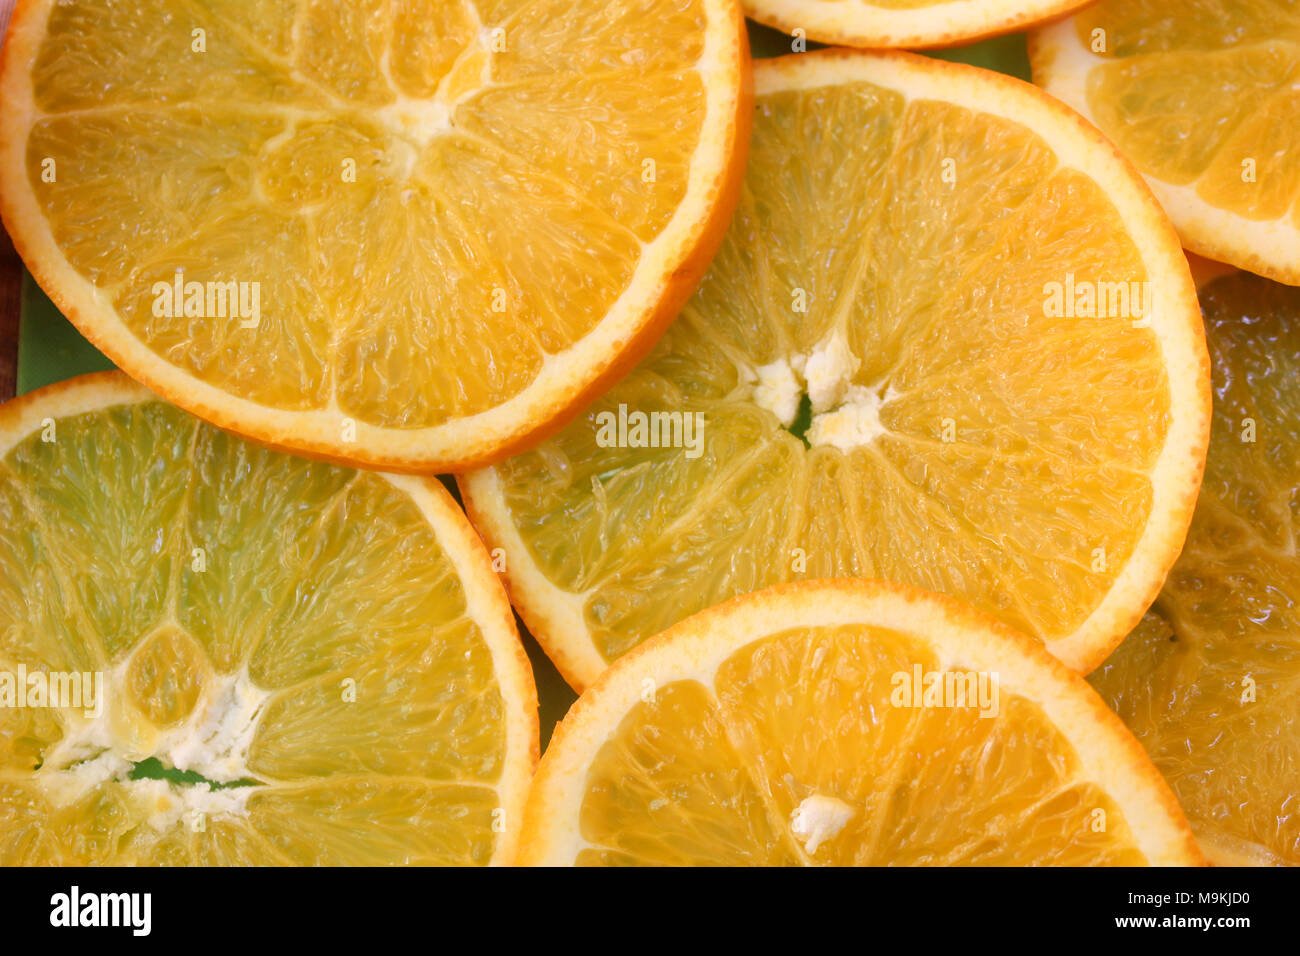 sliced oranges background top view - Stock Image